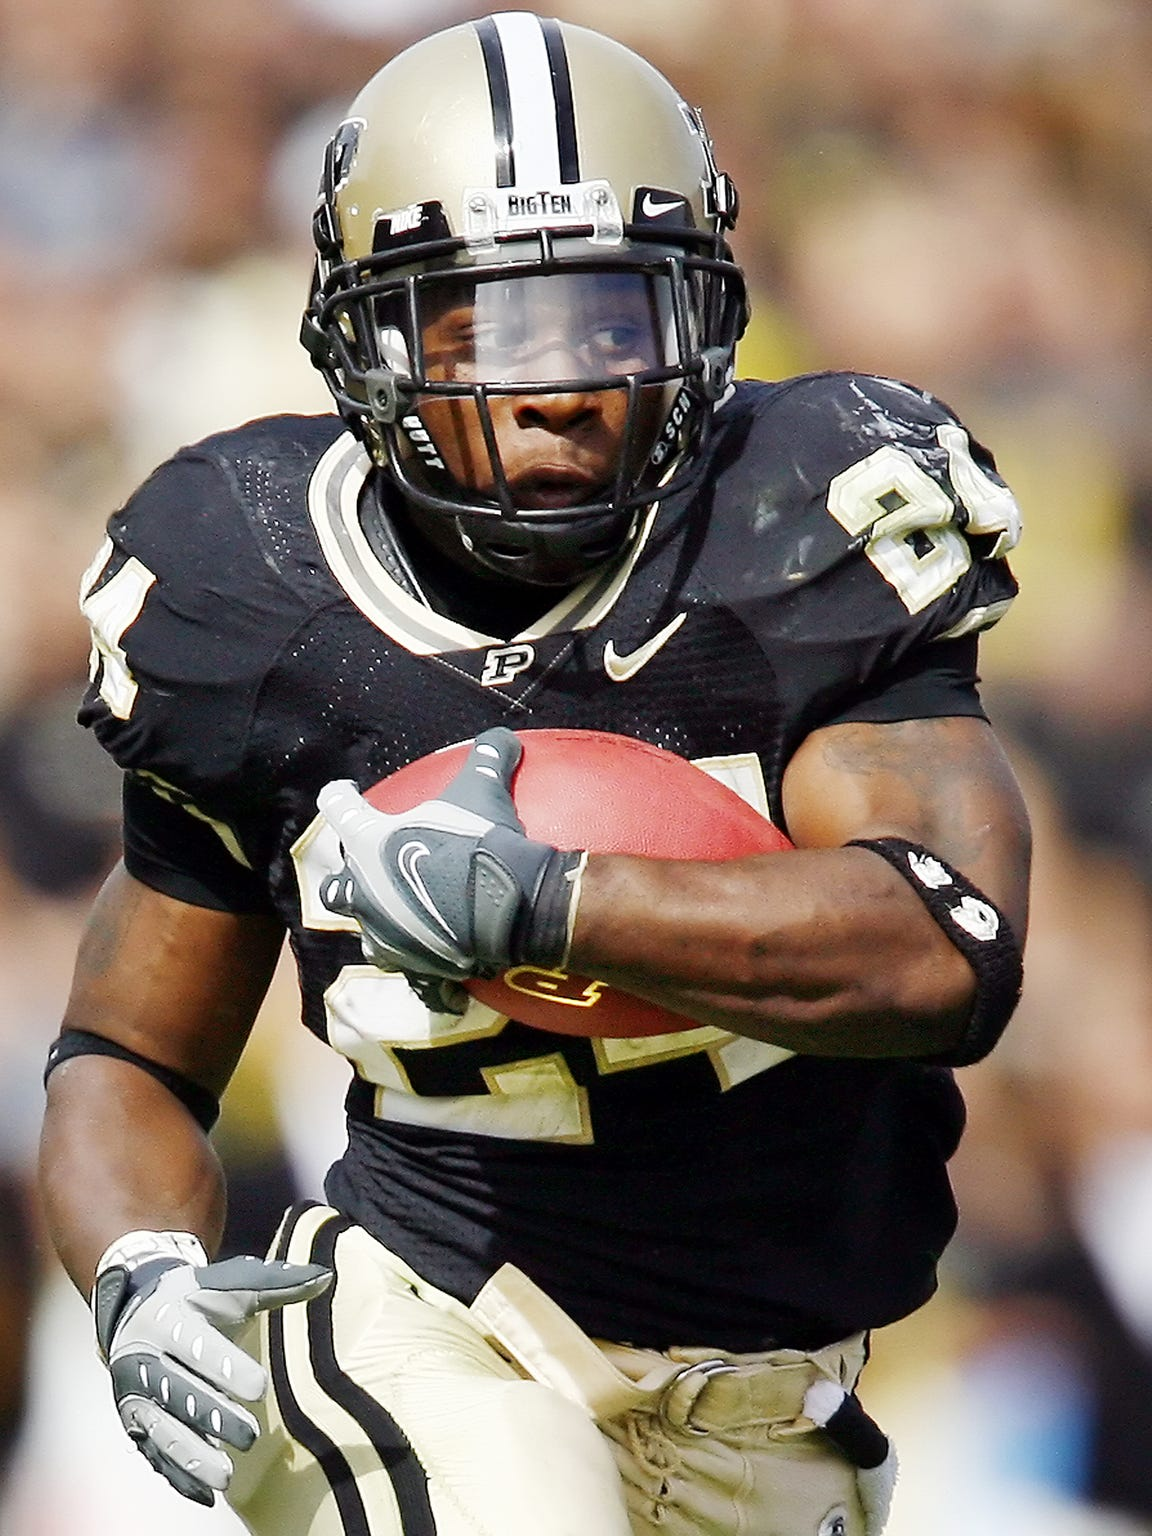 Kory Sheets is Purdue's No. 2 career rushing leaders.